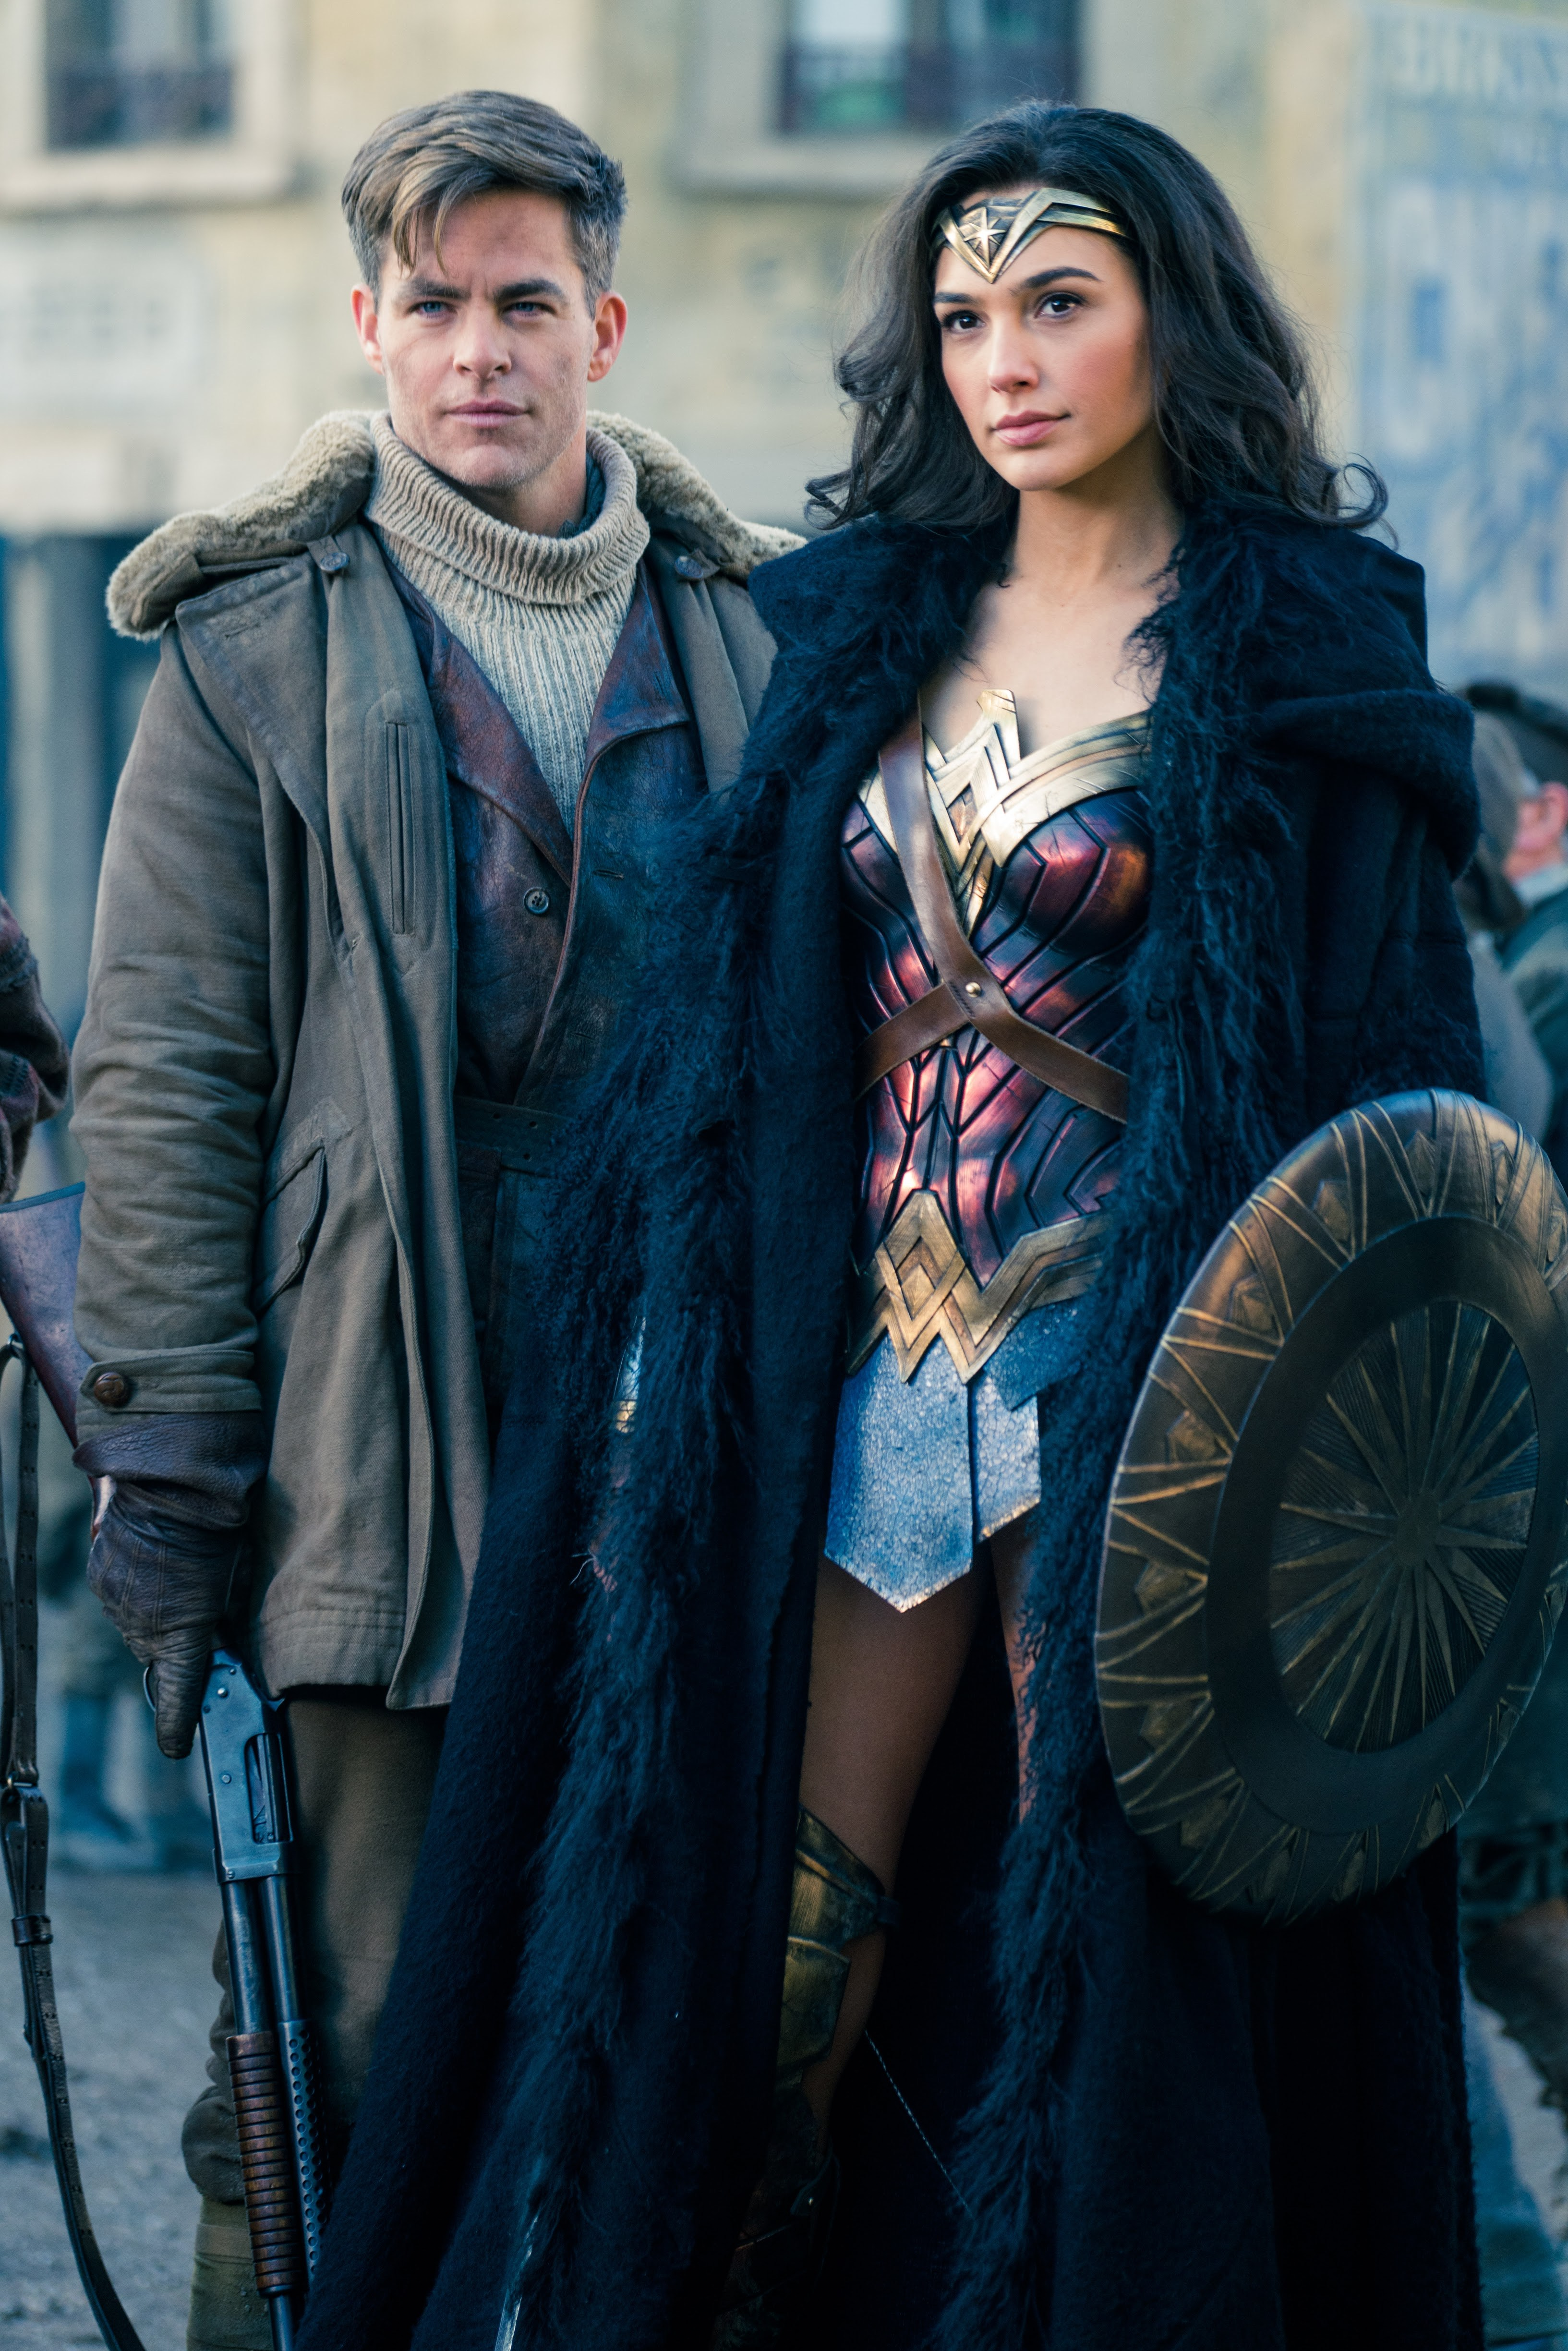 Wonder Woman Also Stars Chris Pine Robin Wright Danny Huston David Thewlis Ewen Bremner Said Taghmaoui And Lucy Davis Directed By Patty Jenkins